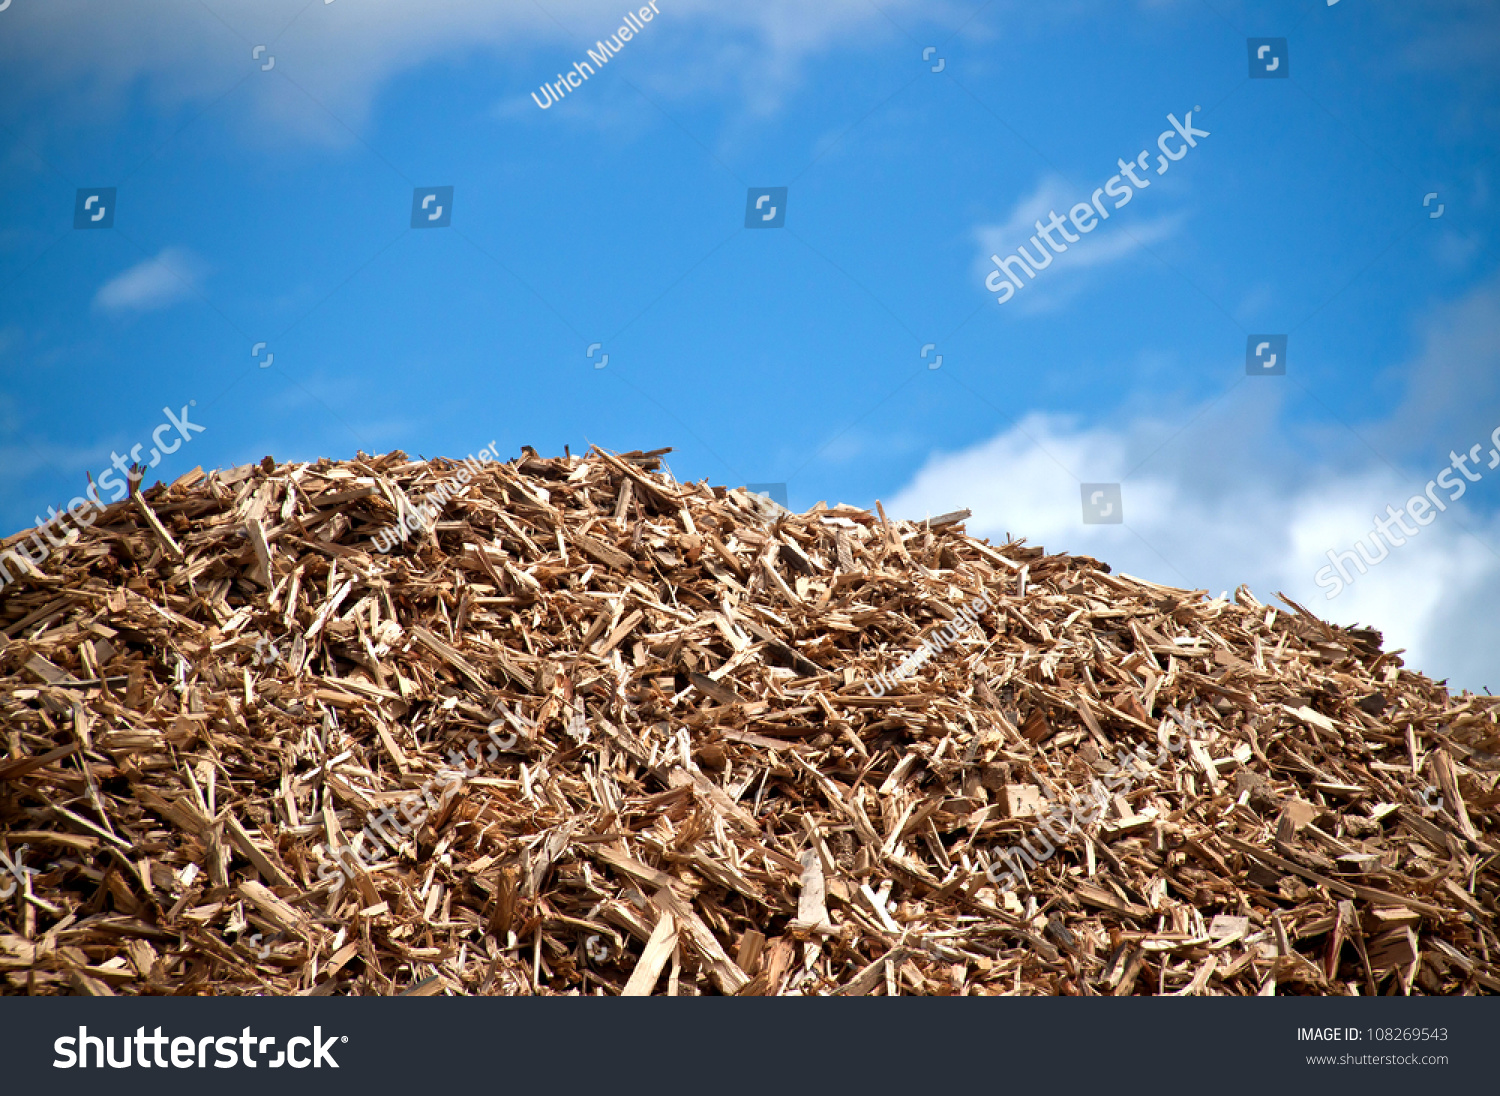 pile of wood for combustion in biomass power plant stock photo 108269543 shutterstock. Black Bedroom Furniture Sets. Home Design Ideas